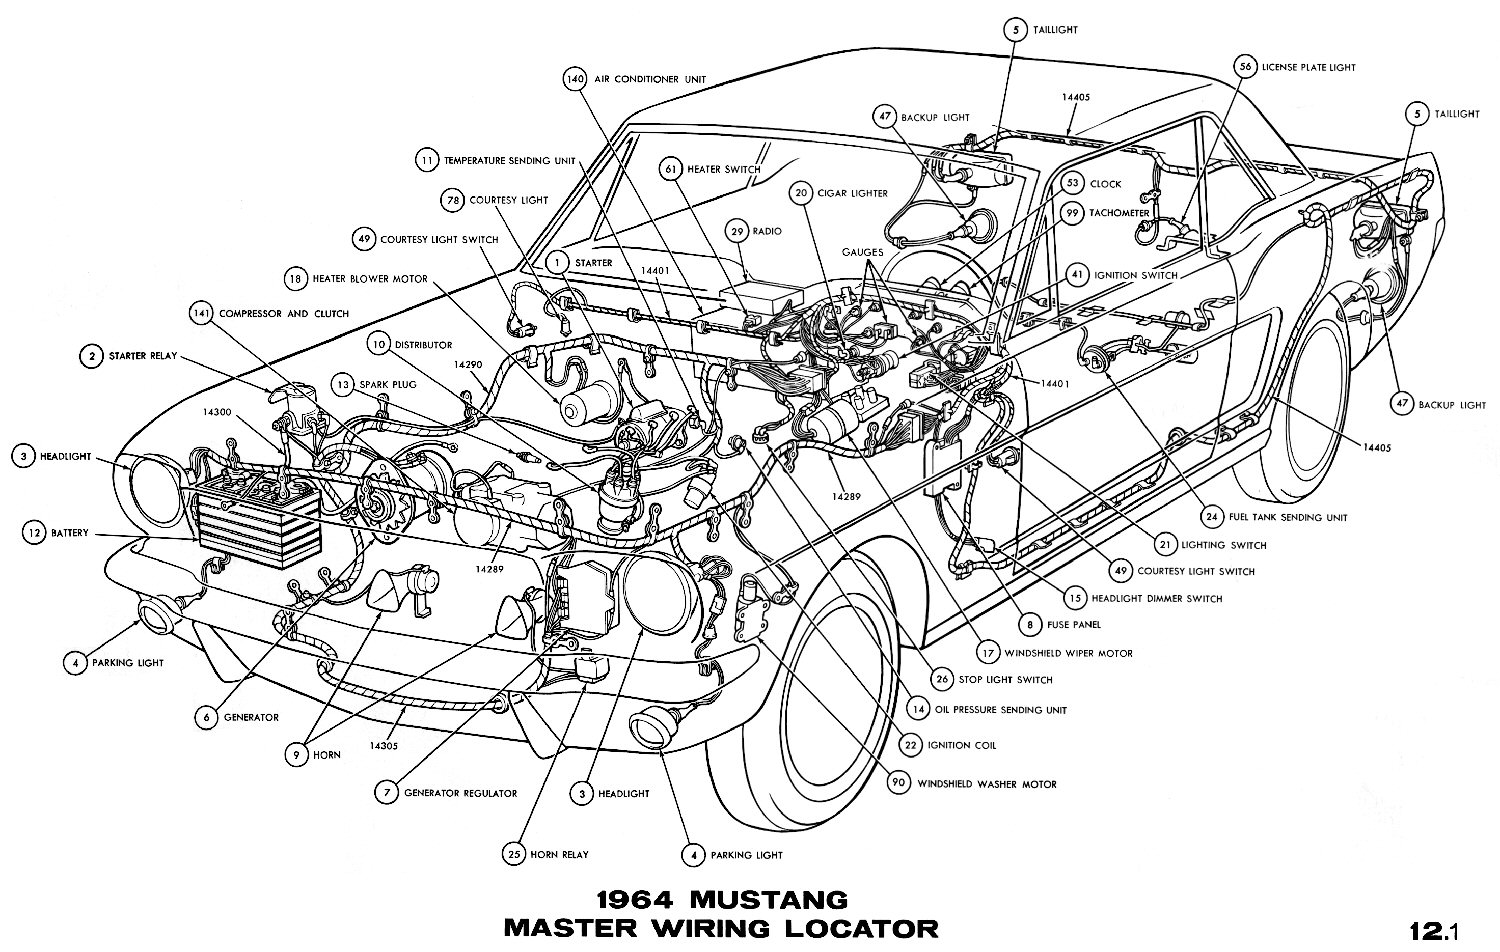 1964a 1964 mustang wiring diagrams average joe restoration mustang parts diagram at bayanpartner.co